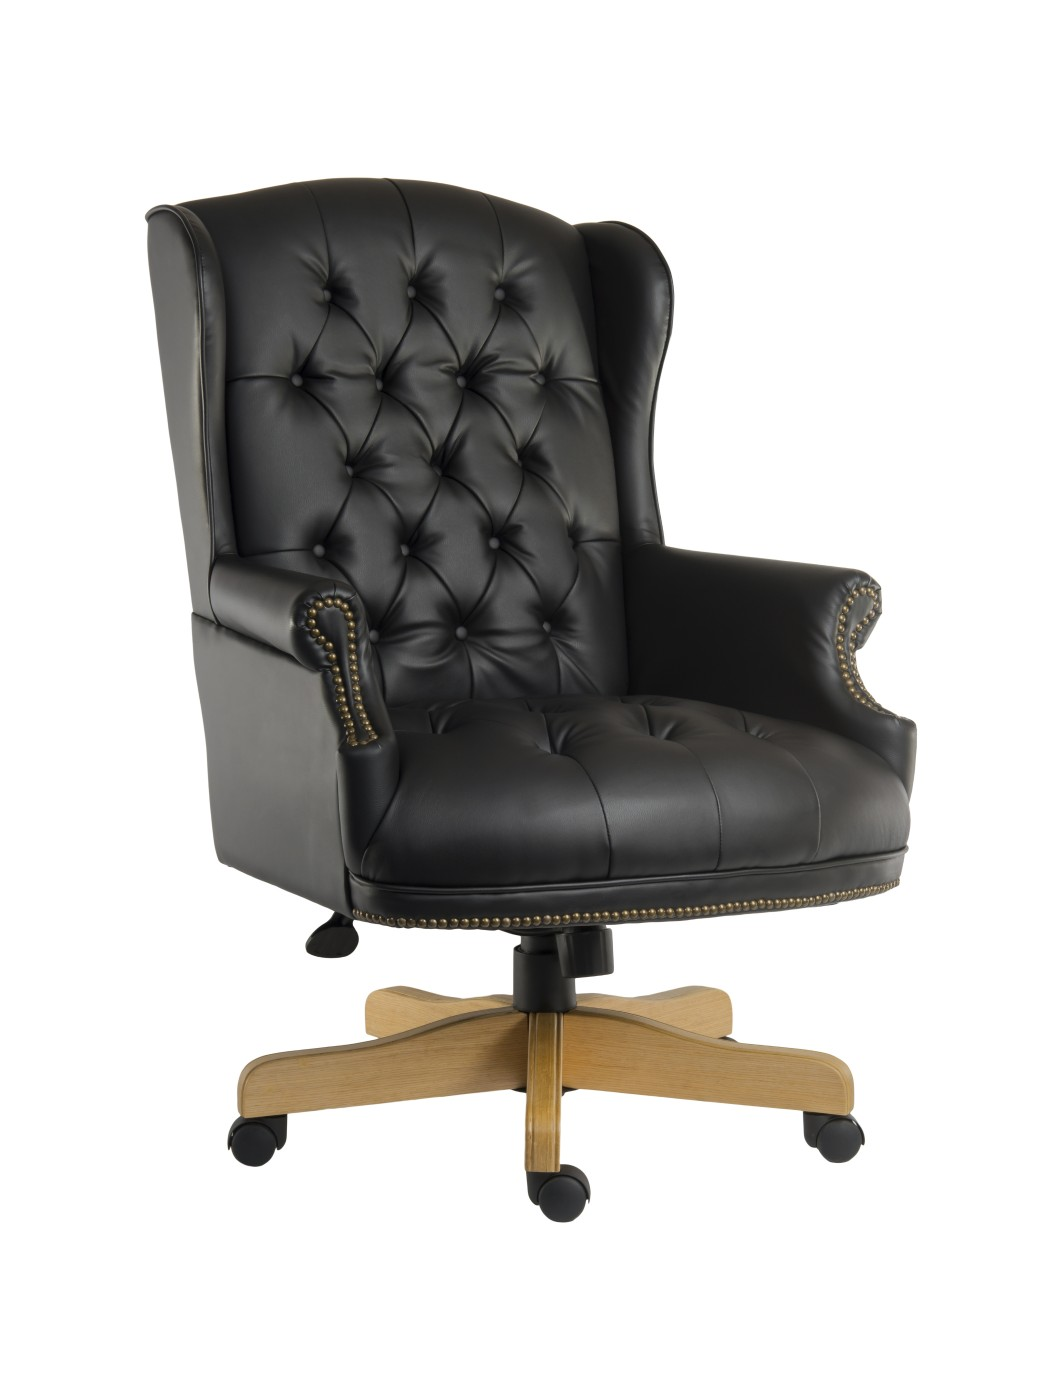 stool chair fantastic furniture cover rentals houston tx chairman noir leather executive b6927 121 office